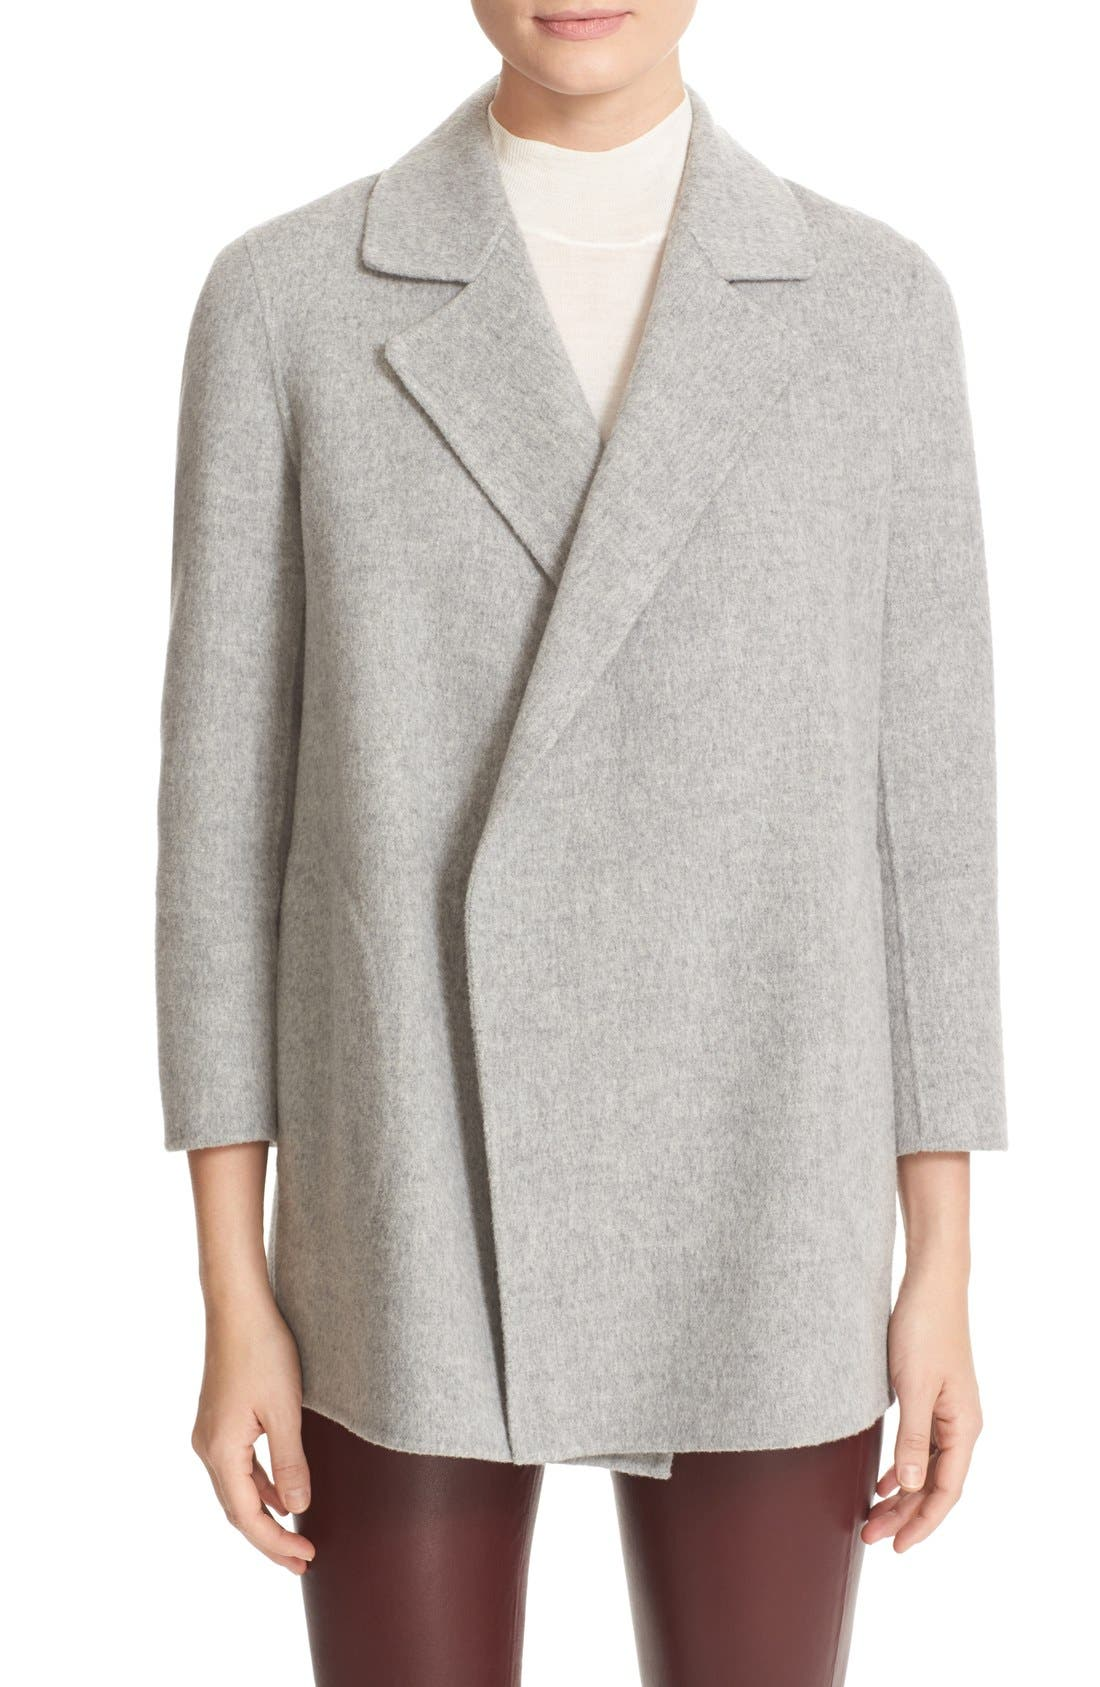 'Clairene New Divide' Wool & Cashmere Open Front Topper, Main, color, 097